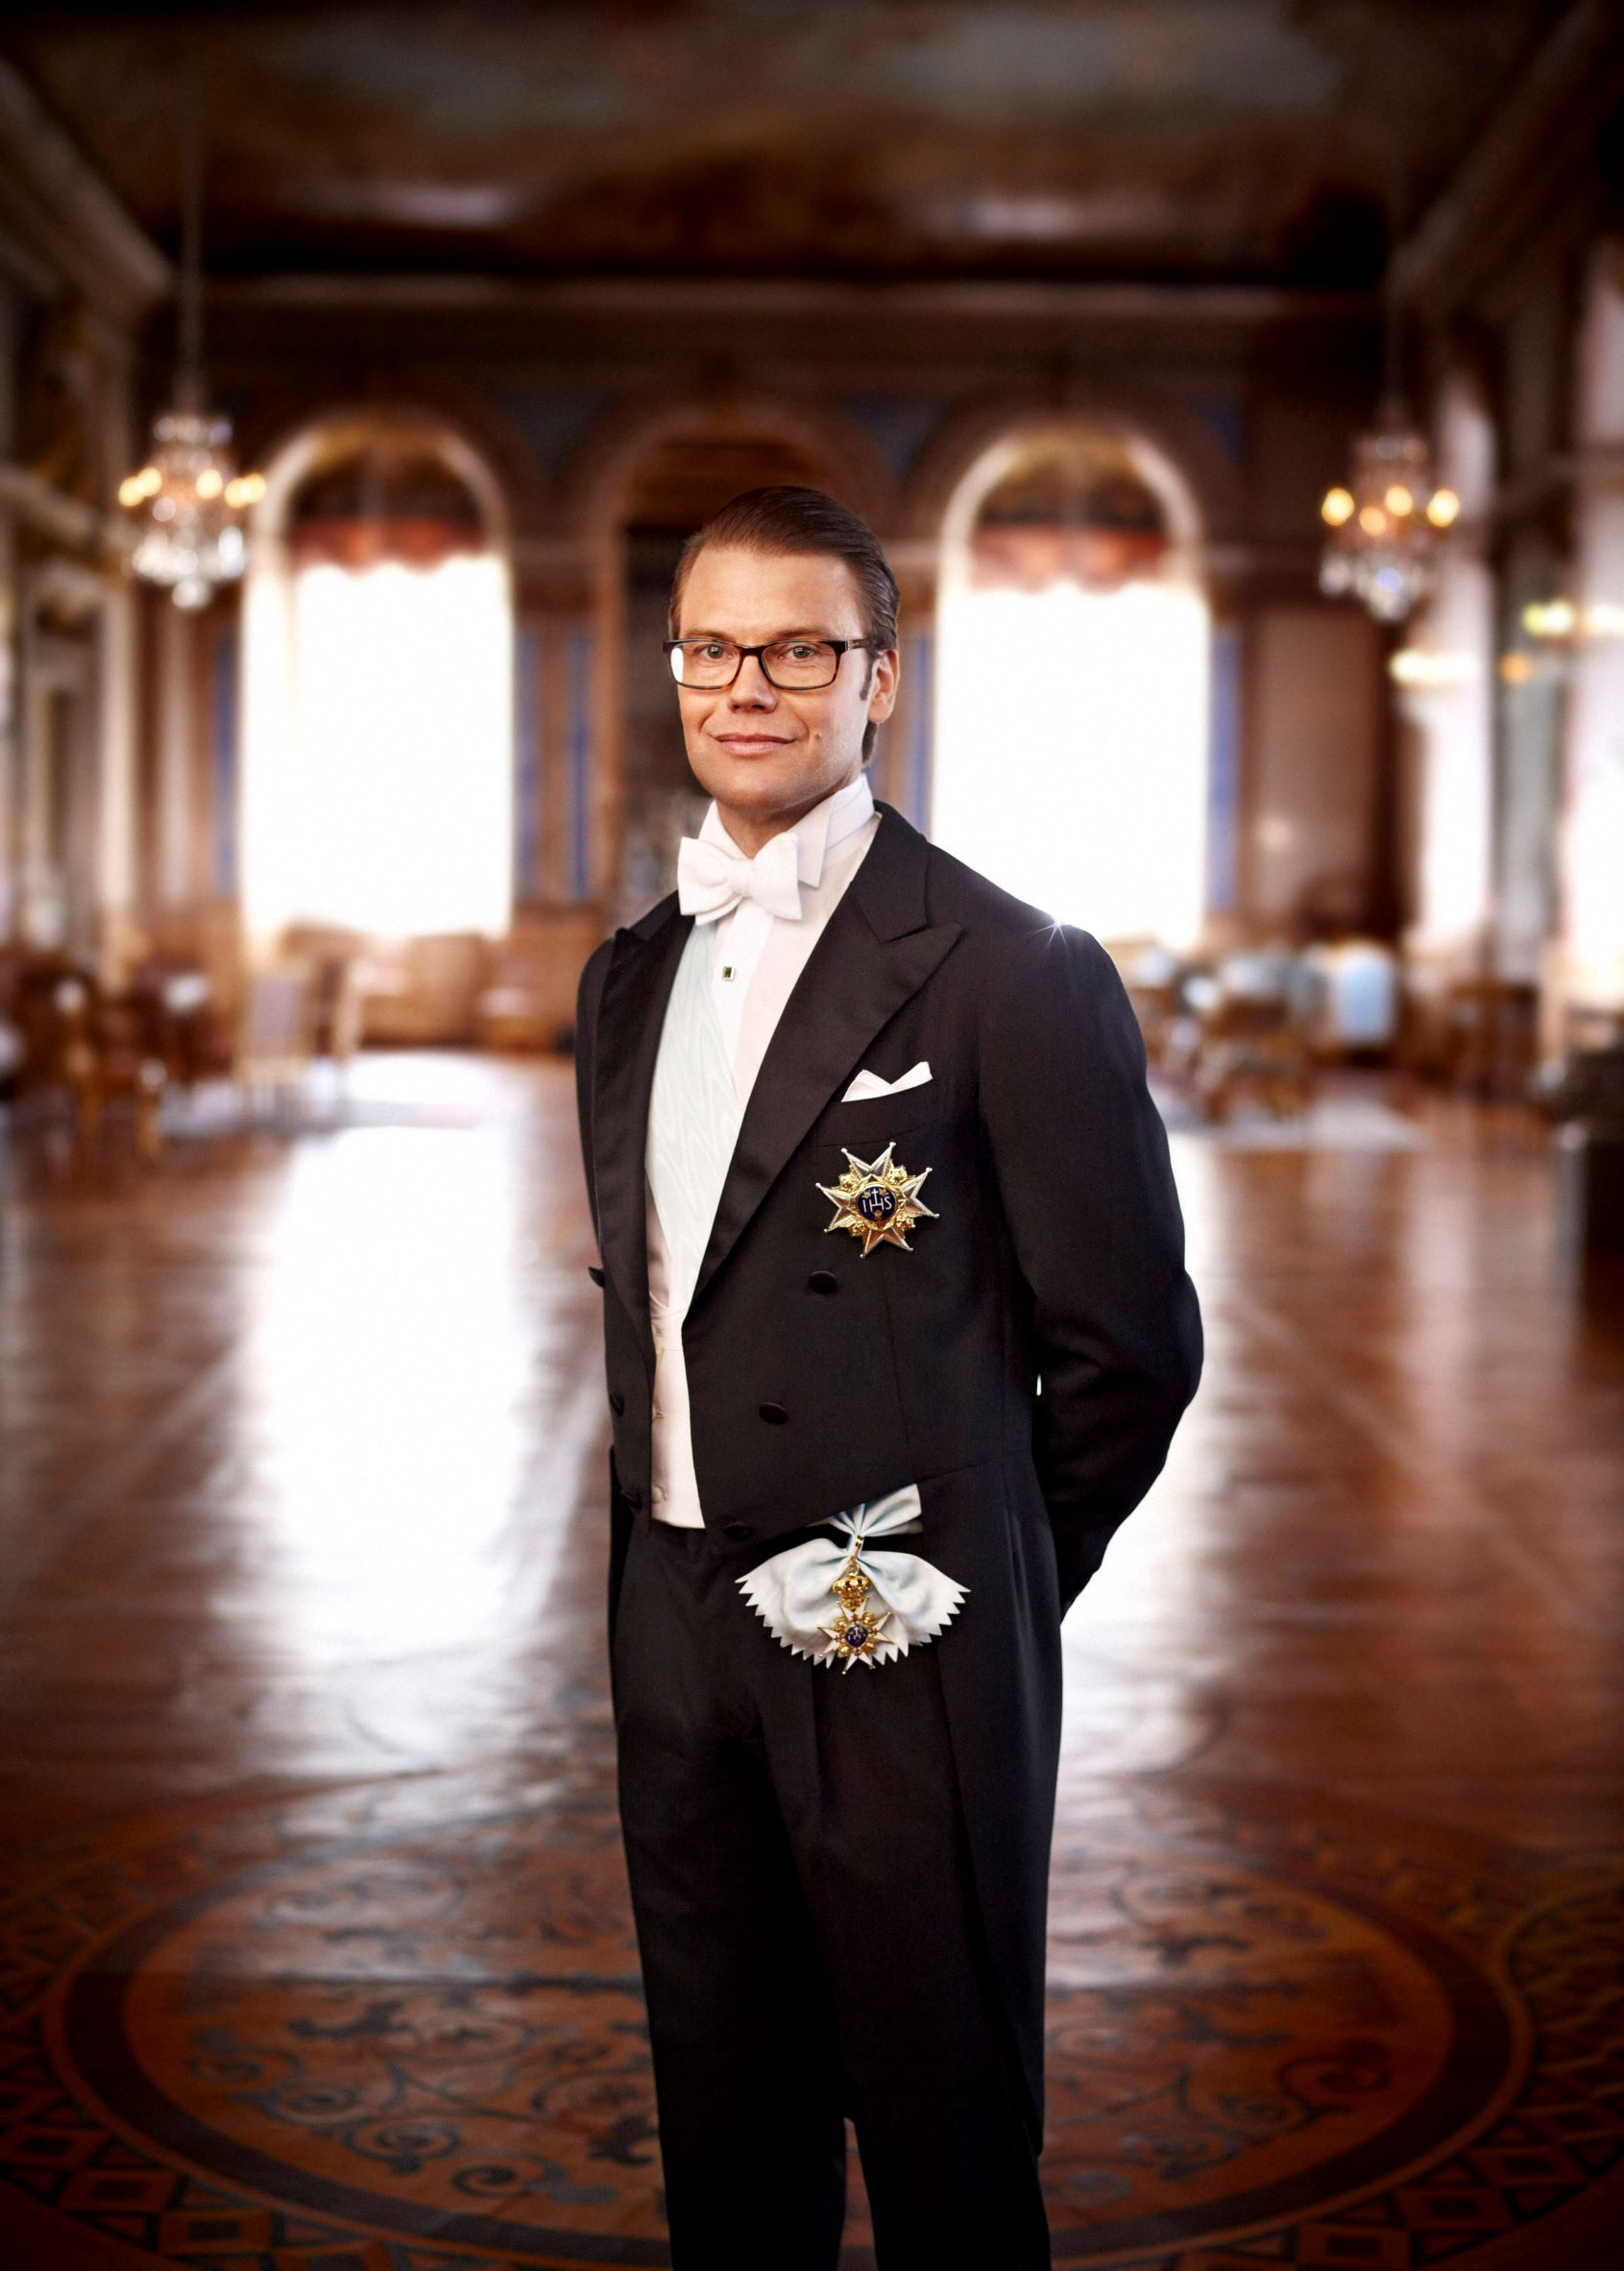 His Highness Prince Daniel patron of Swedish basketball